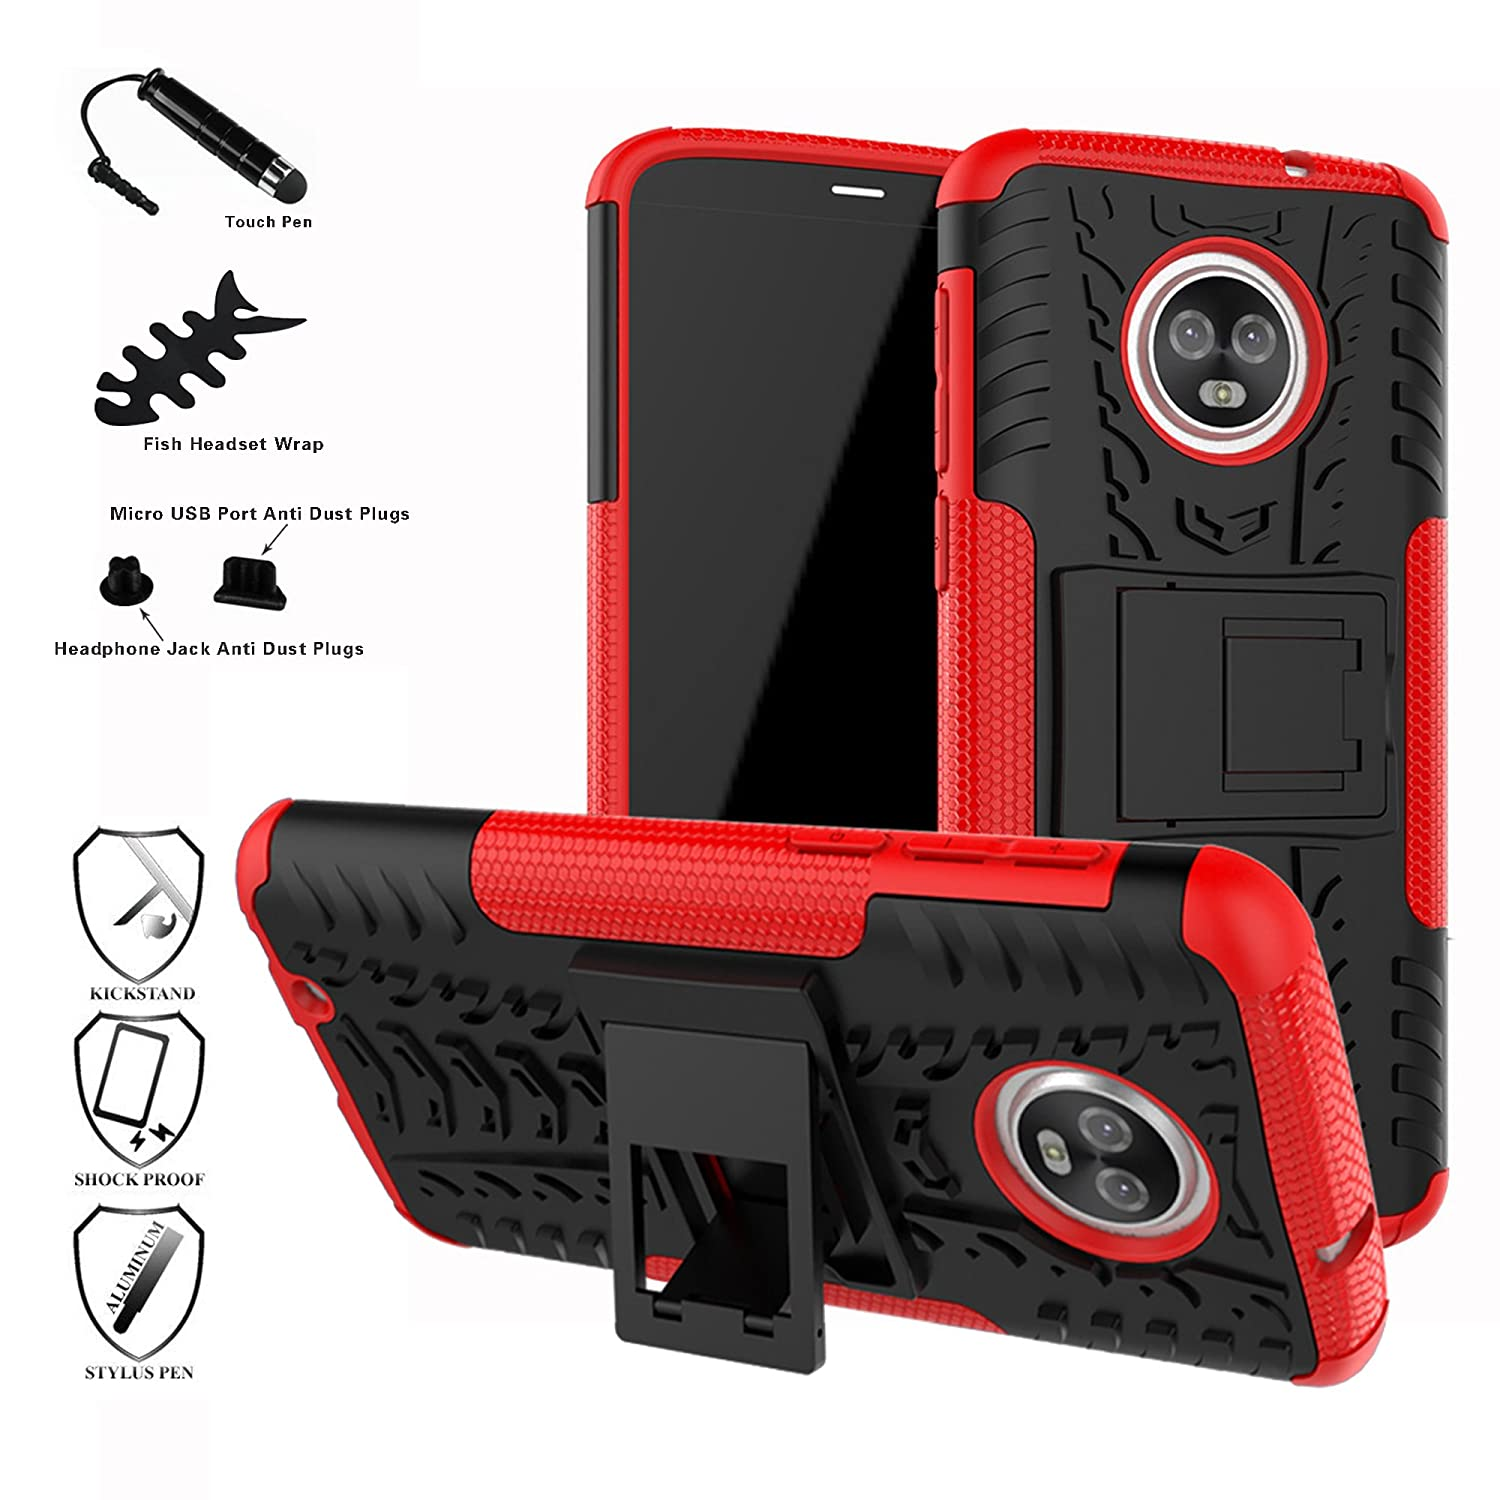 Moto G6 2018 Case, Mama Mouth Shockproof Heavy Duty Combo Hybrid Rugged Dual Layer Grip Cover with Kickstand for Motorola Moto G (6th Generation) 5.7' (with 4 in 1 Packaged), Red bigmouthstore